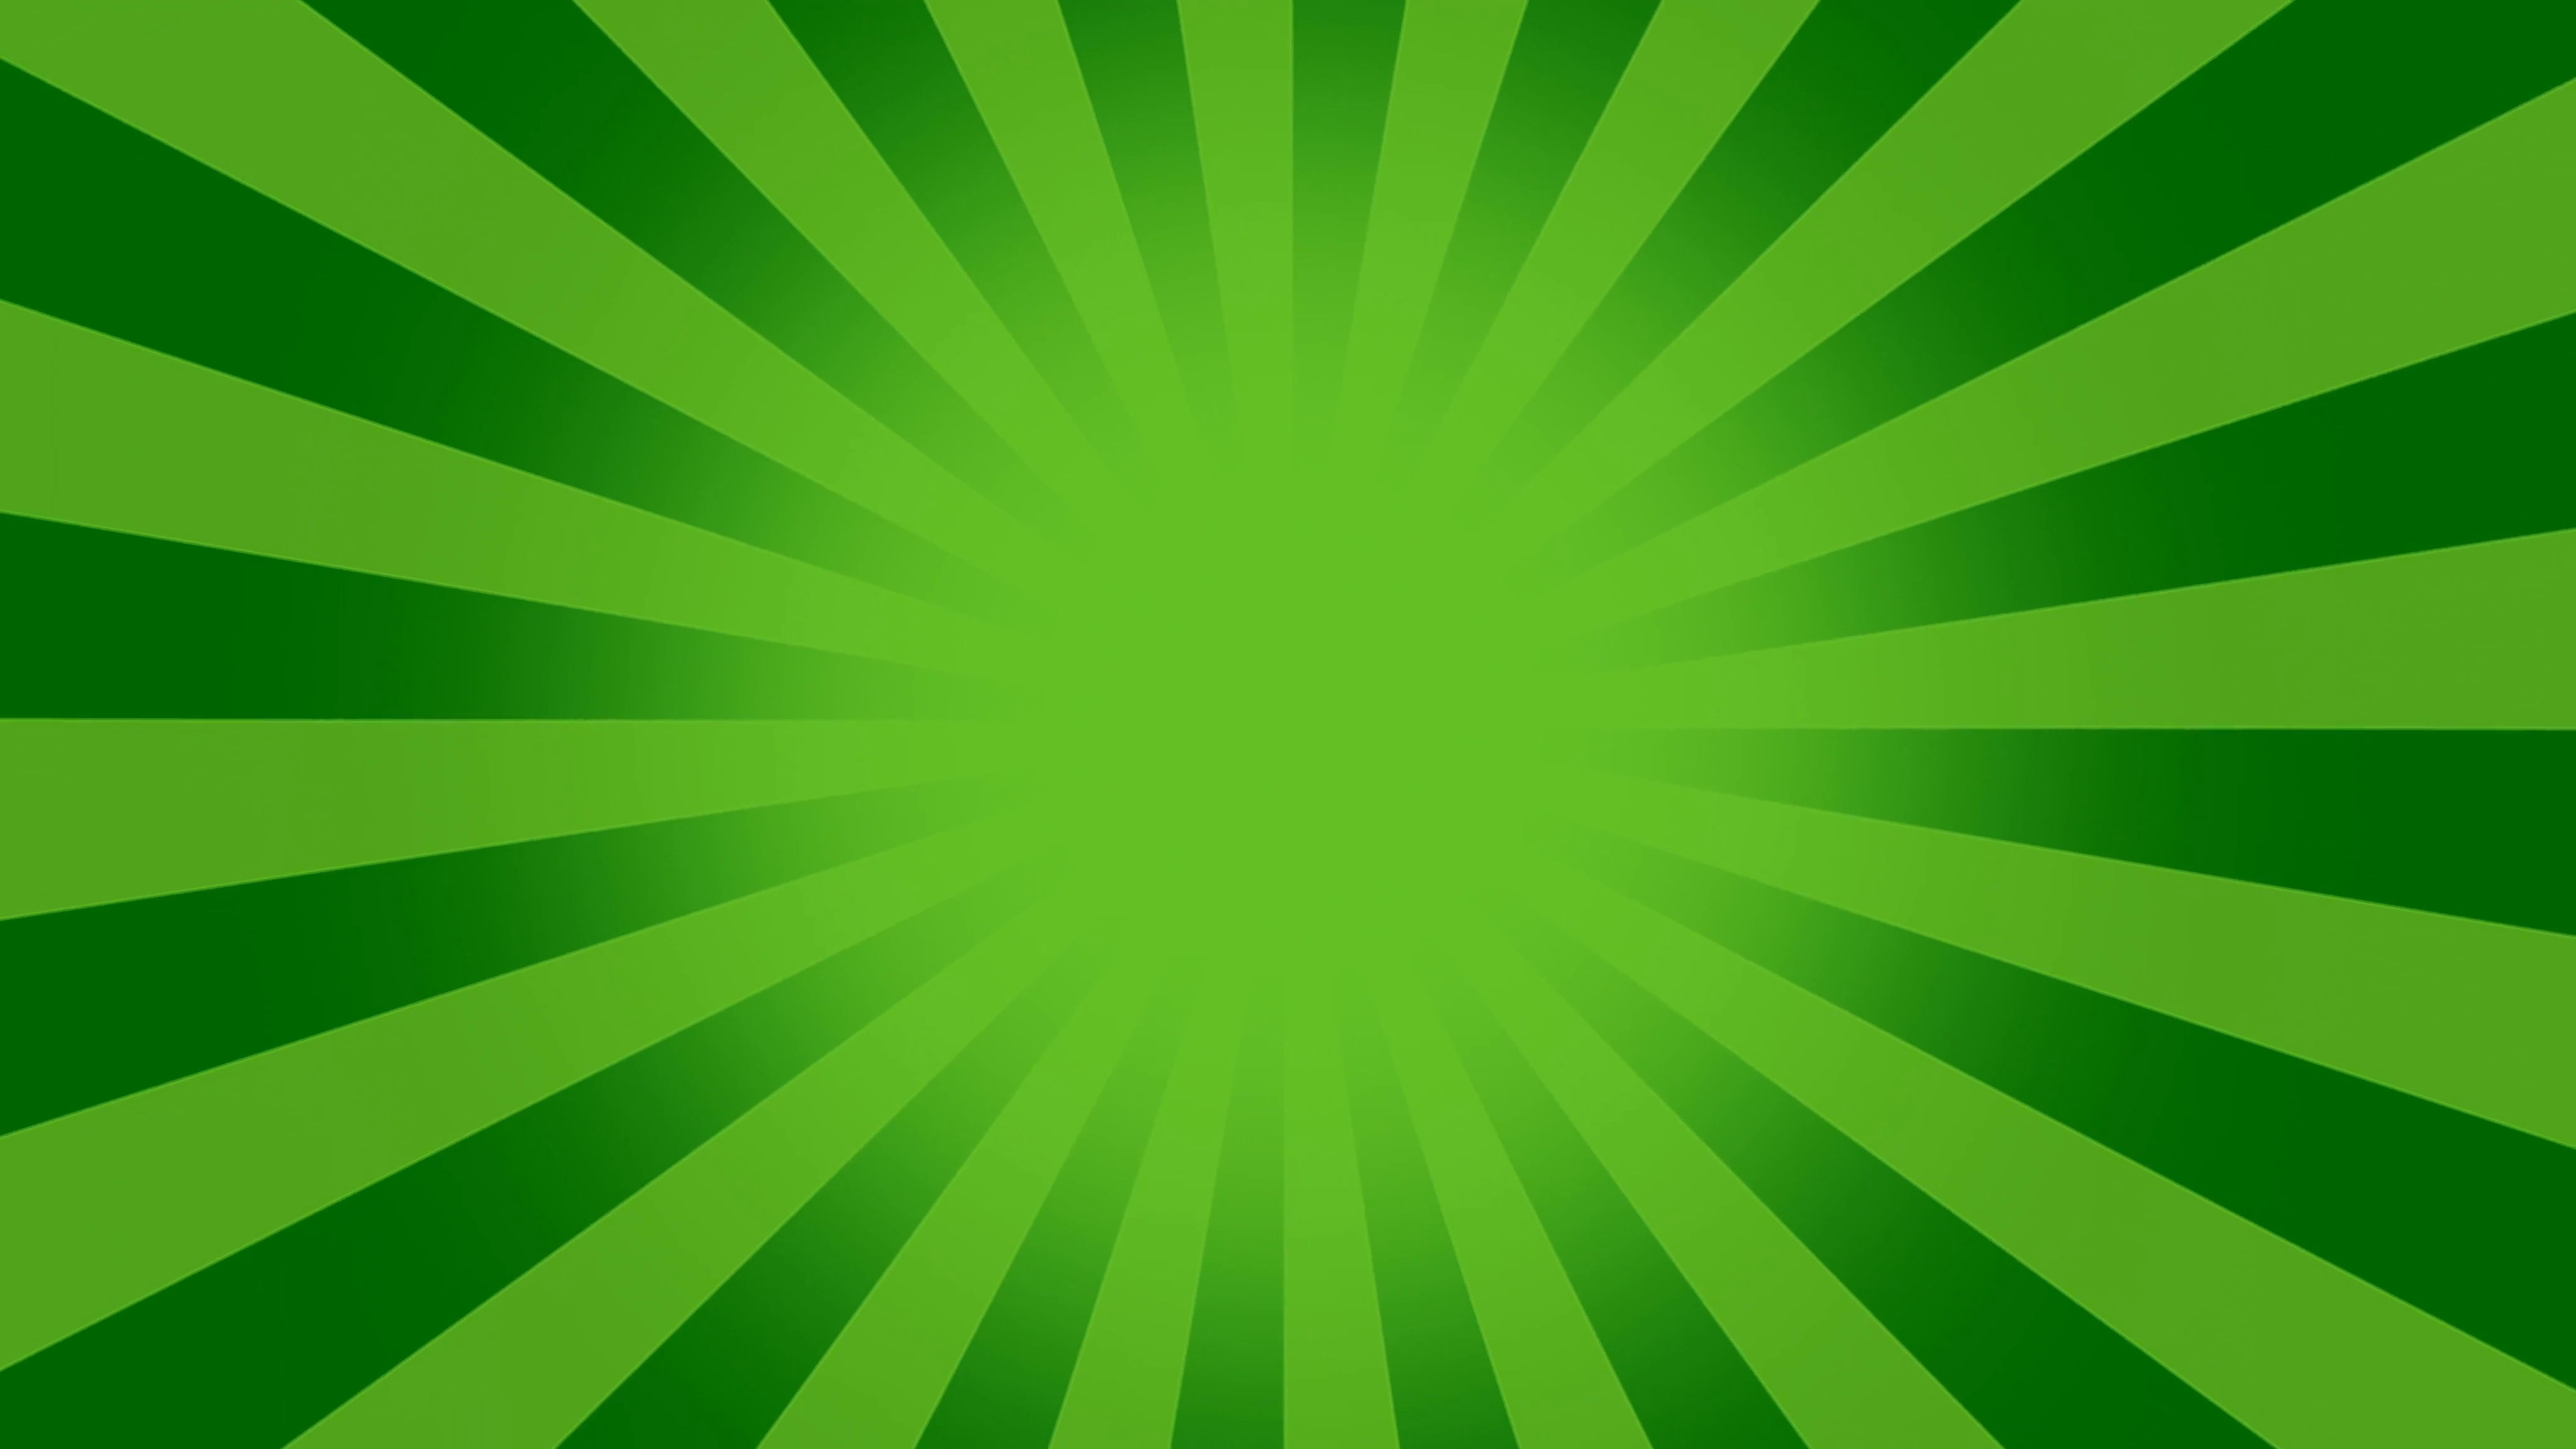 4096x2304 Green Burst Vector Background. Cartoon Background With Space For